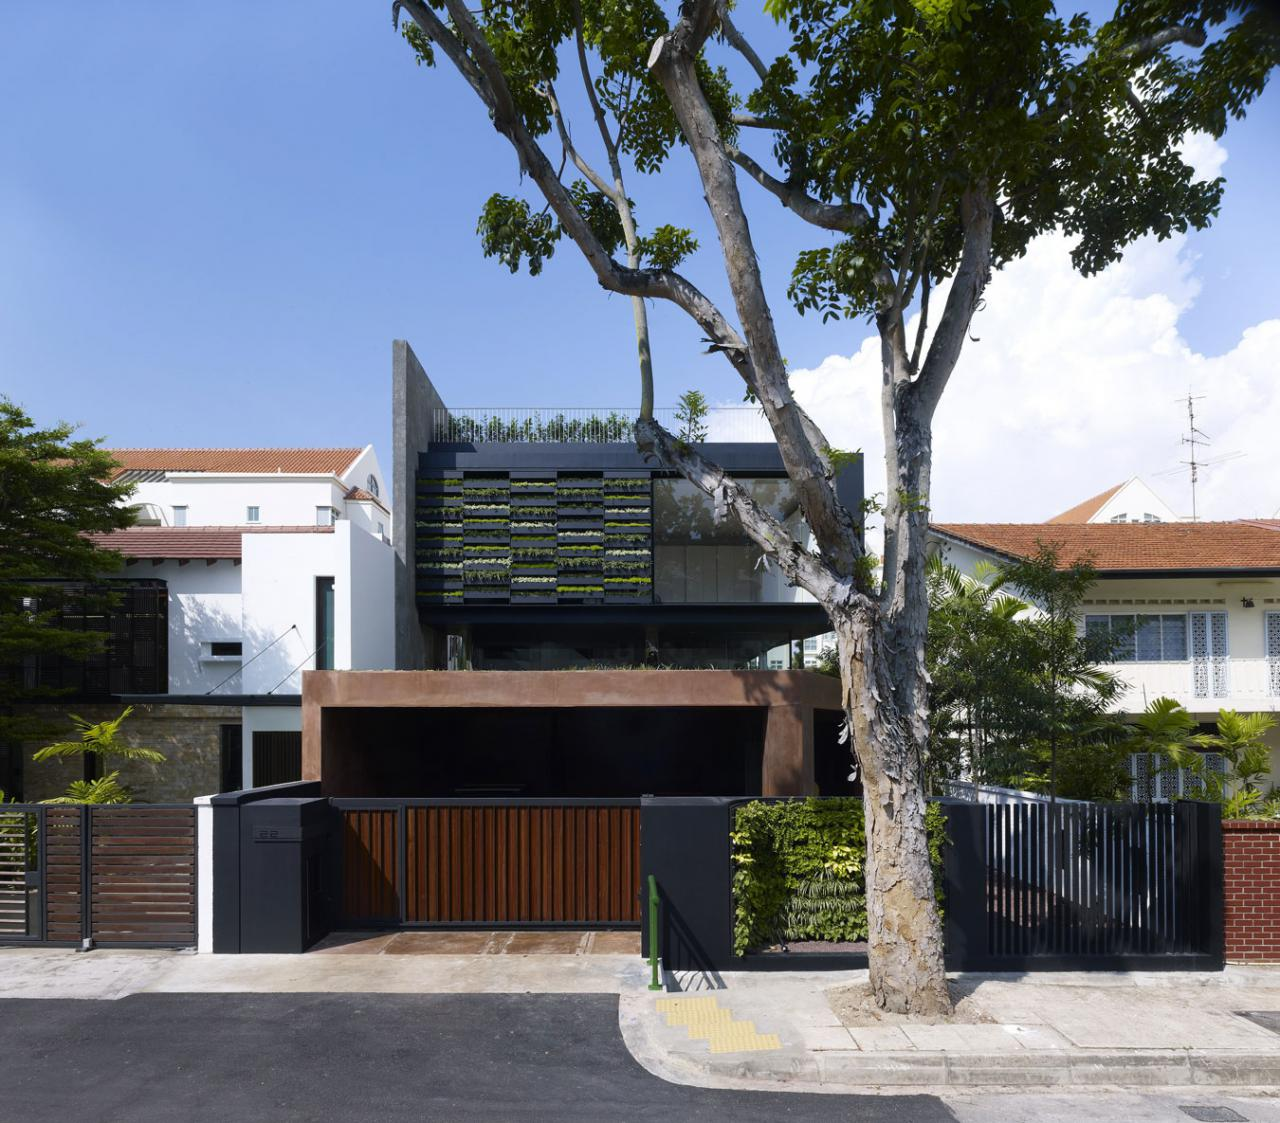 Garden House Design With Wooden Gate Wall Planters And Black Exterior ...